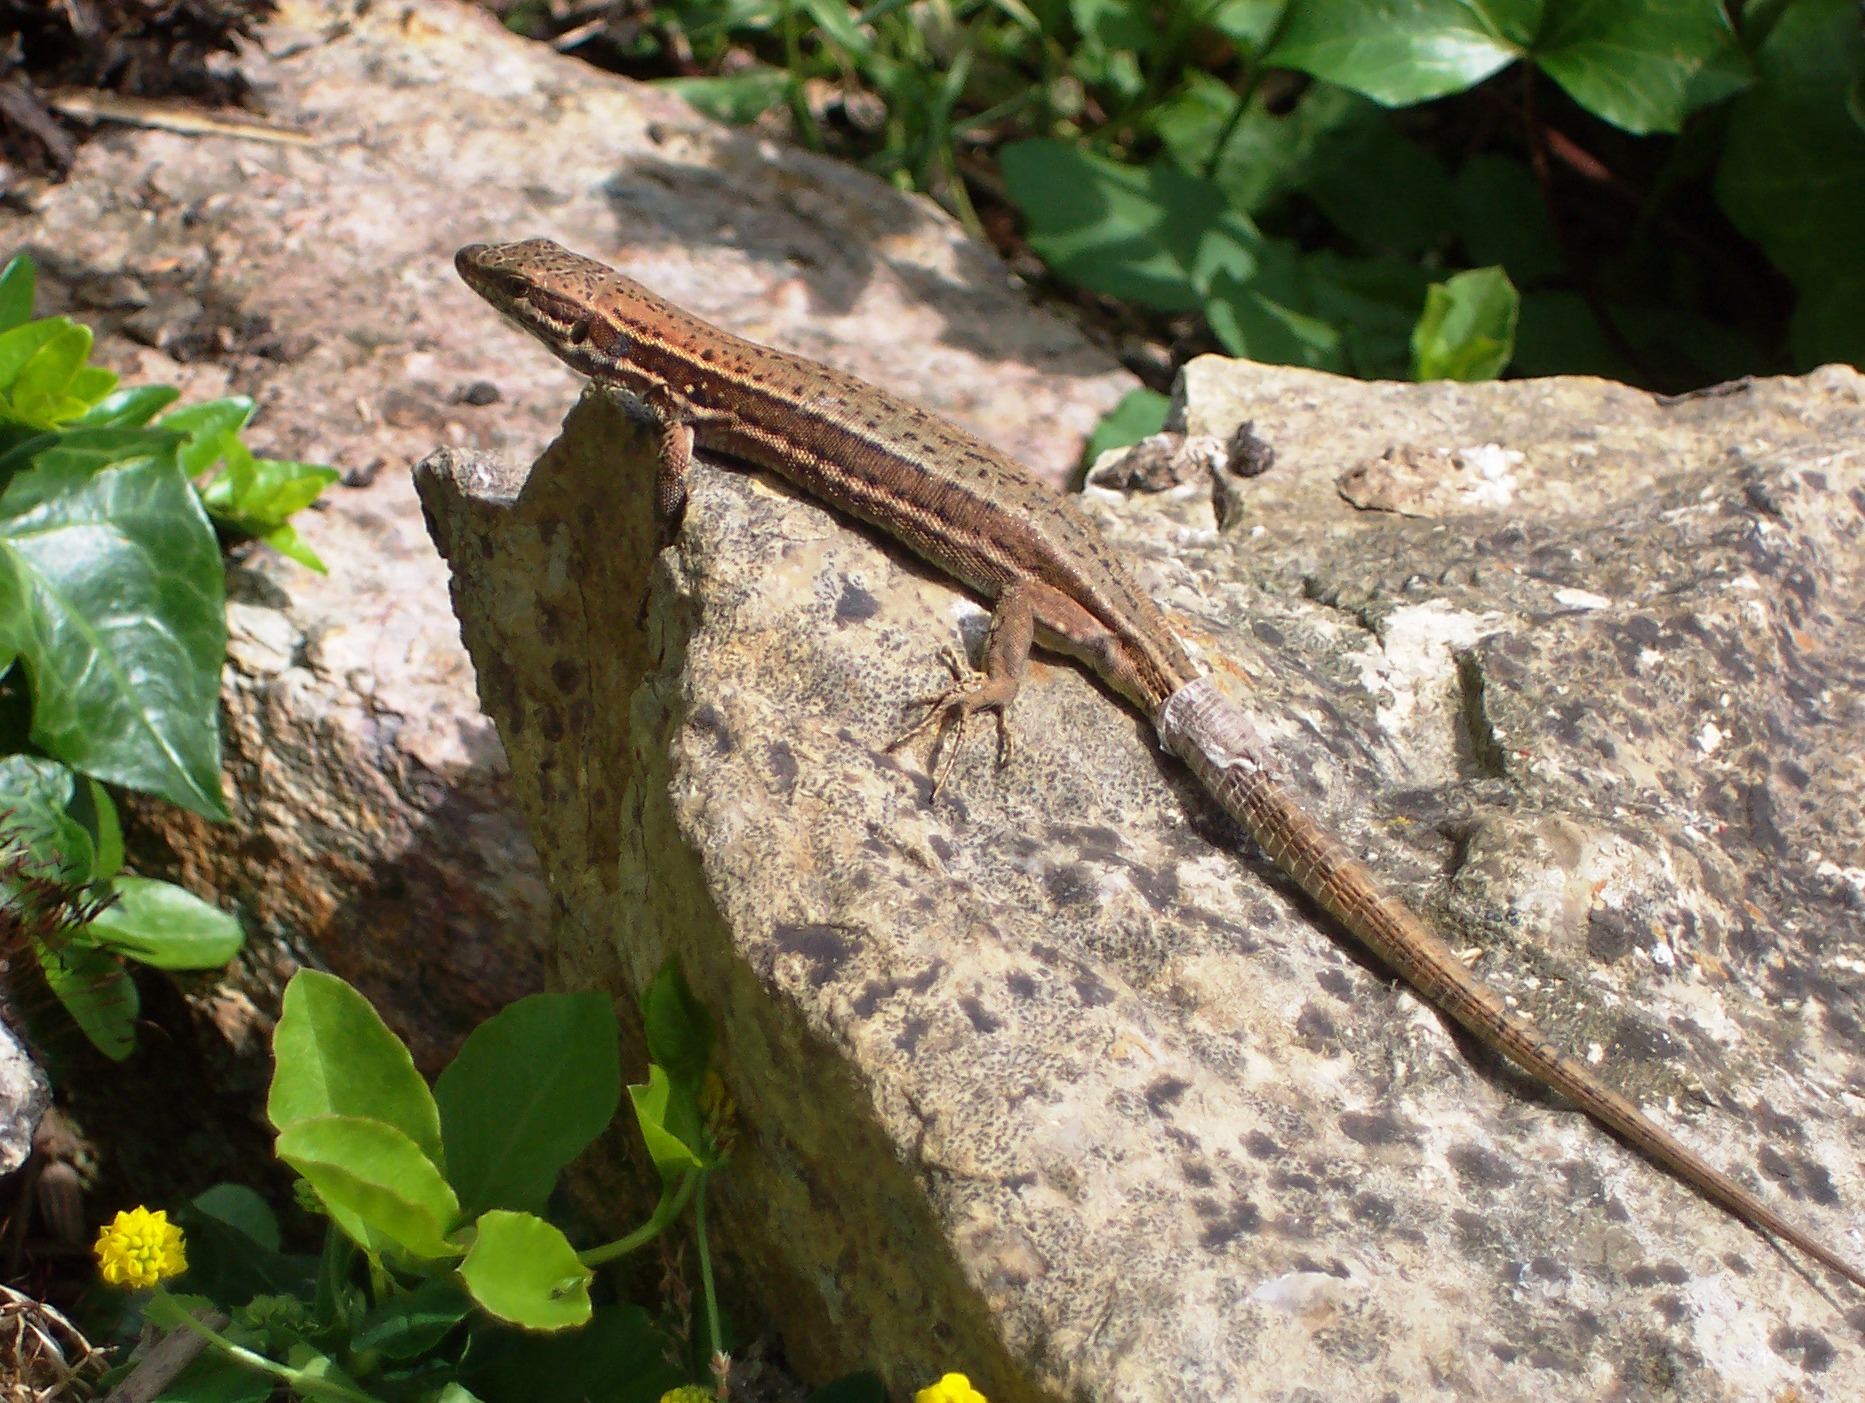 Lizards and Snakes in France